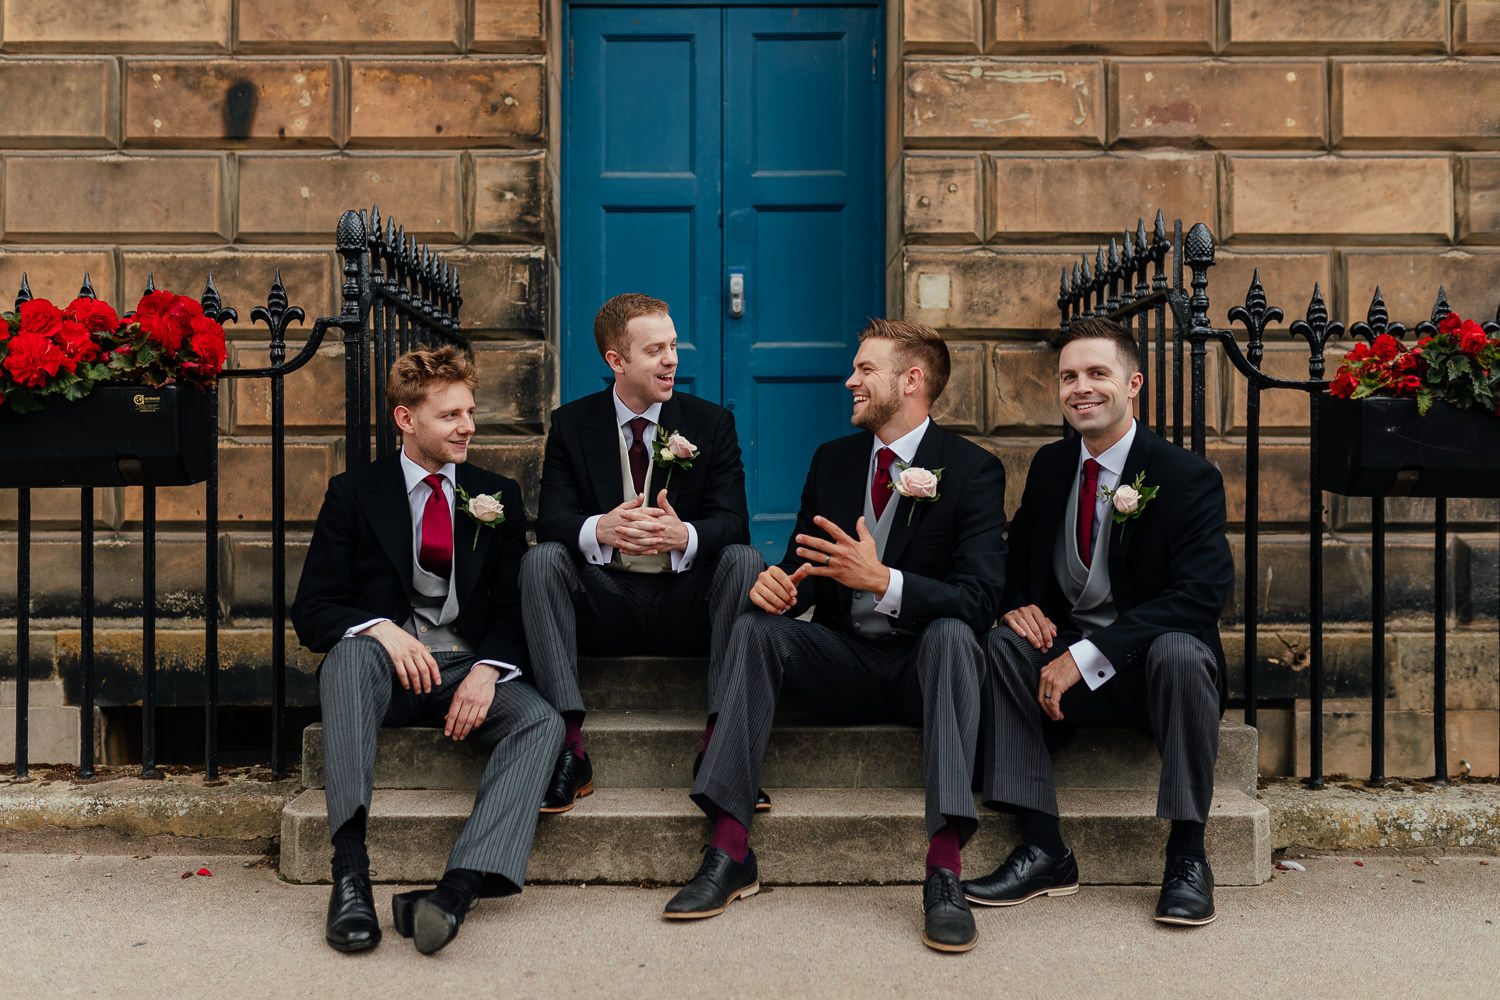 St Andrews Wedding Photos Groom Groomsmen Group Photo